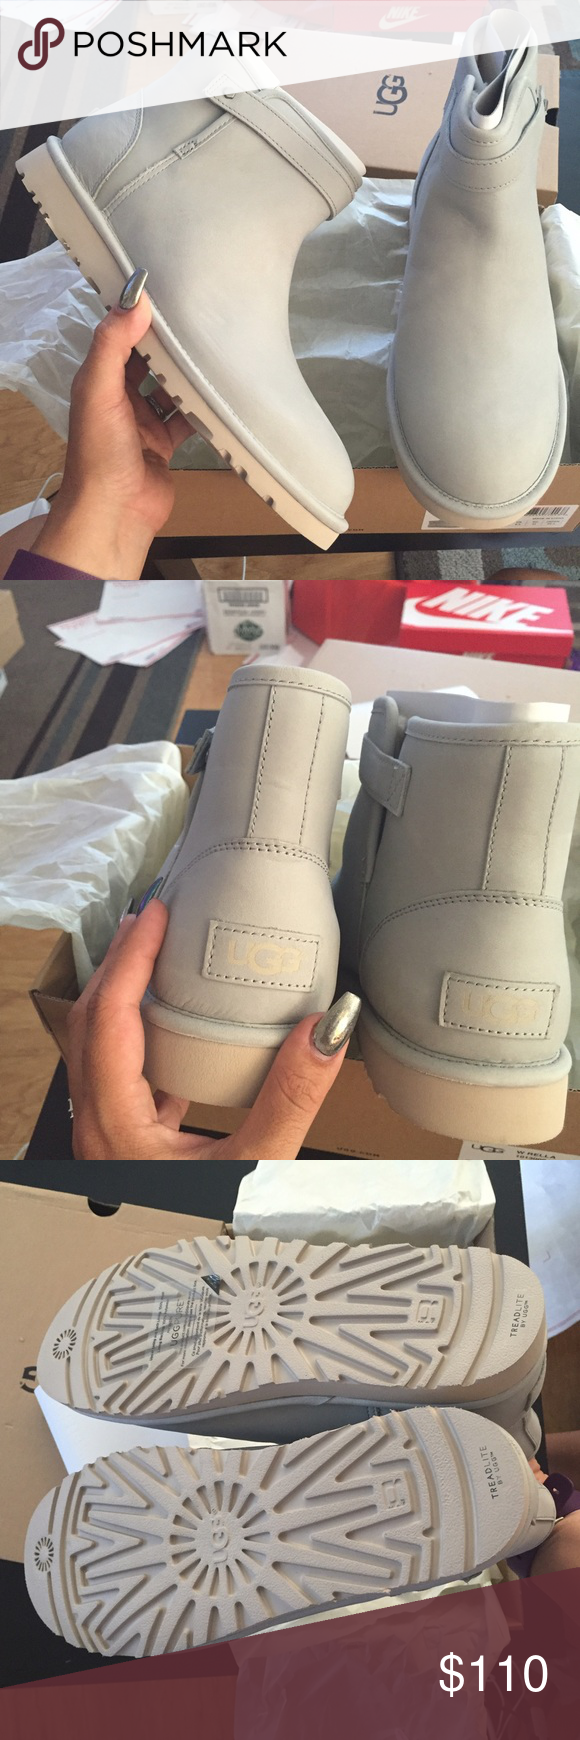 8b470fe1934 UGG rella water resistant frost boots Sz 10 new UGG rella water ...